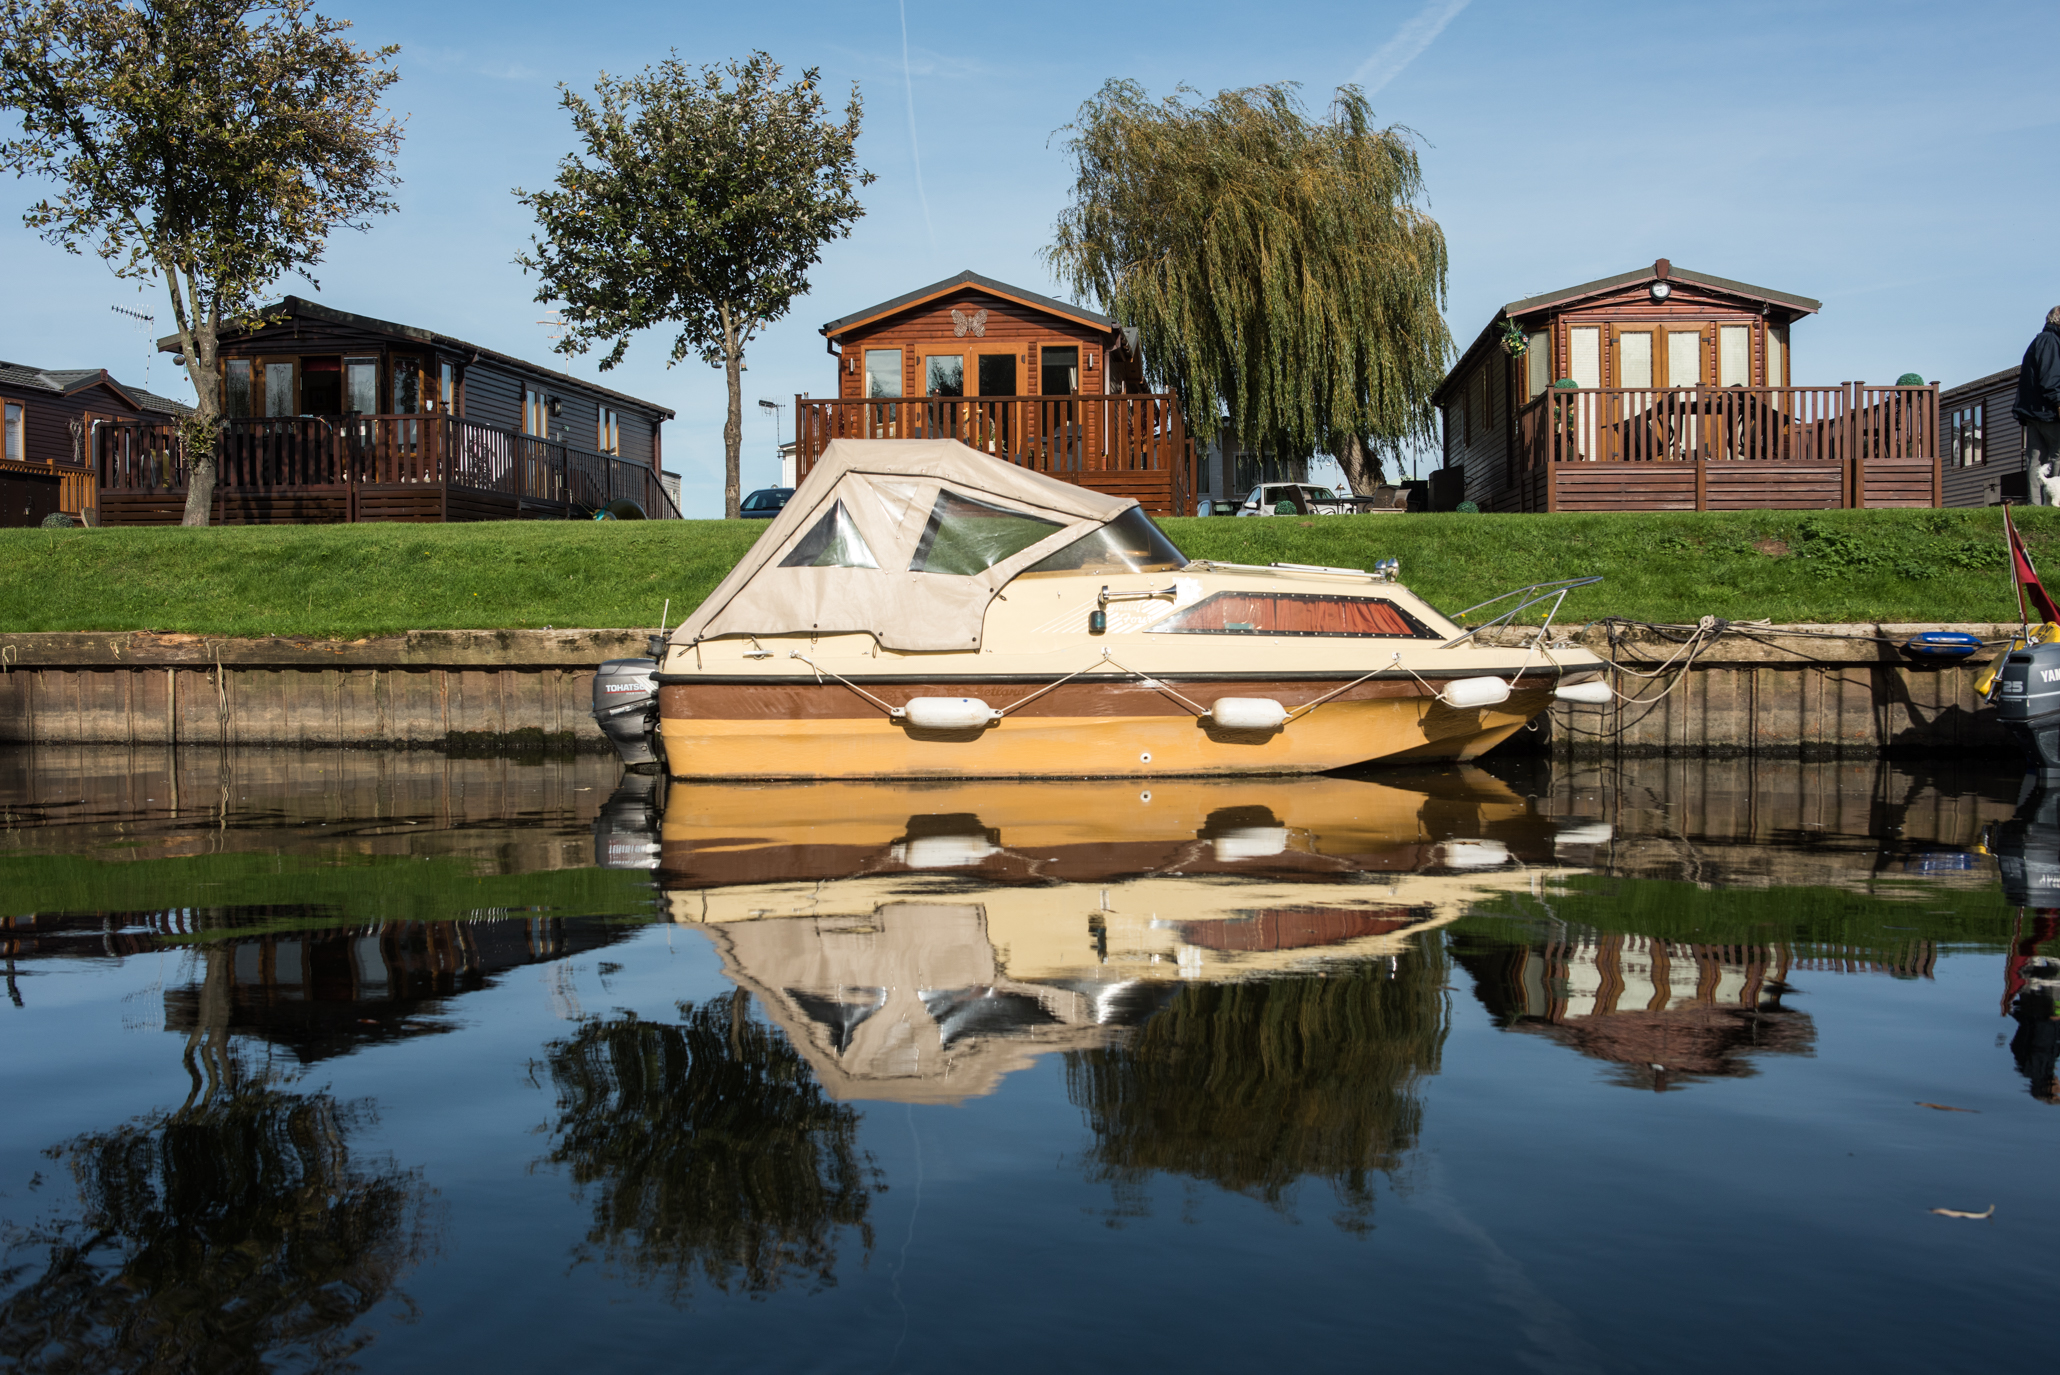 River Avon and its canal -